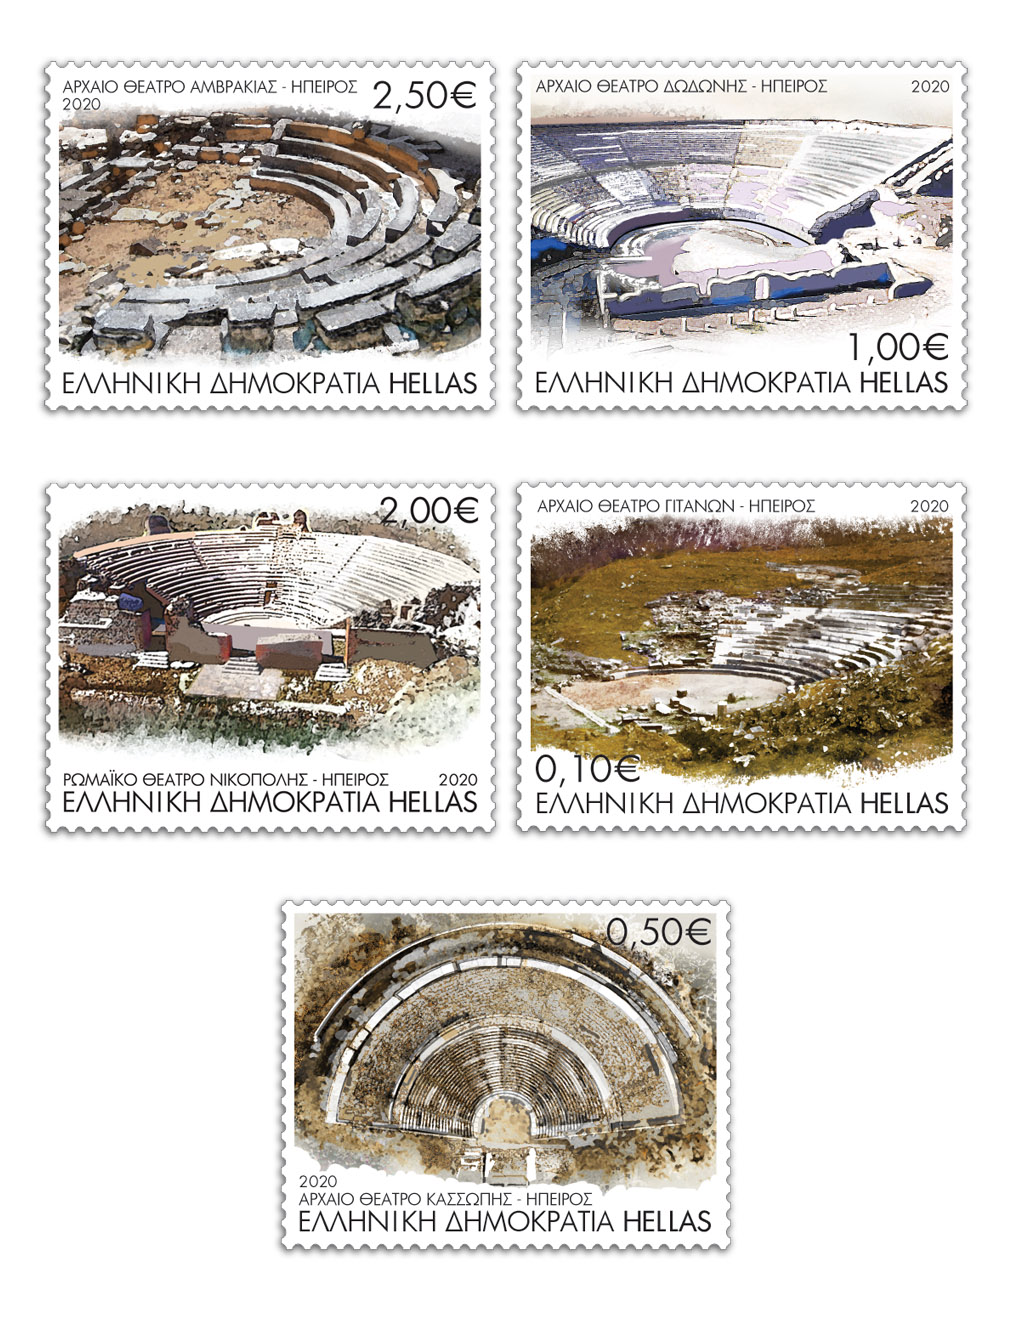 arxaia theatra stamps